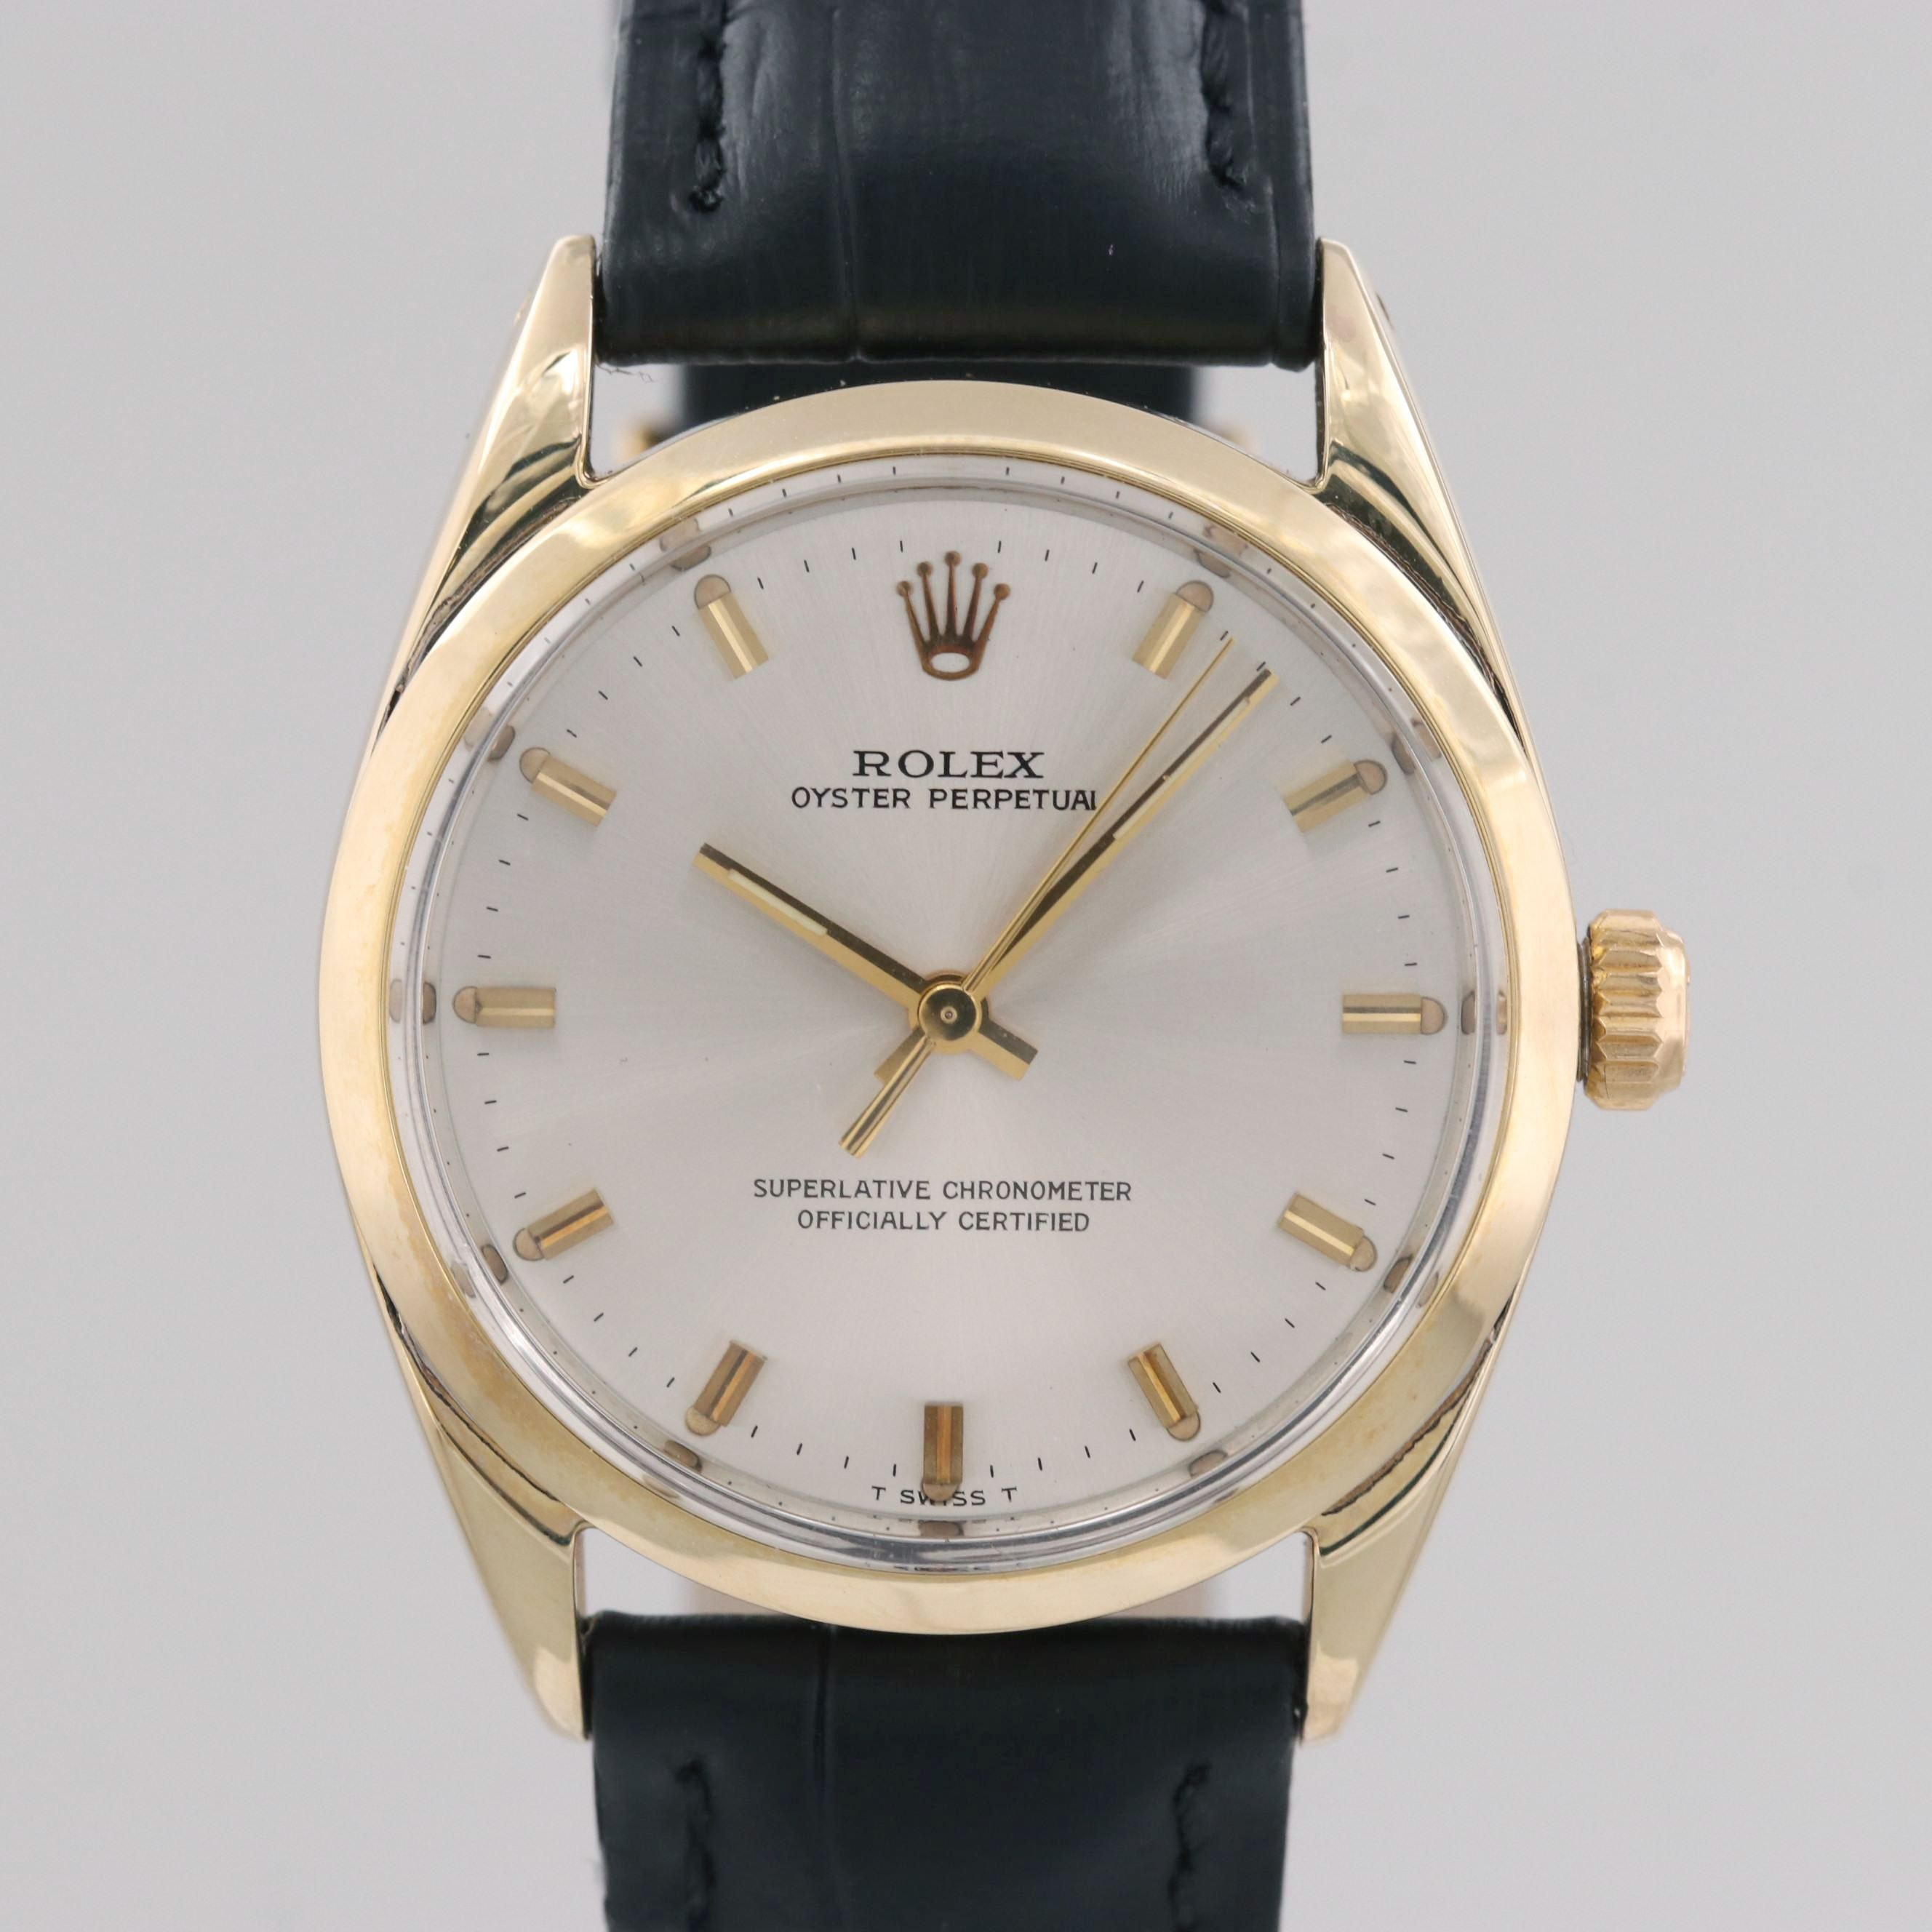 Vintage Rolex Oyster Perpetual Gold Shell Automatic Wristwatch, 1971